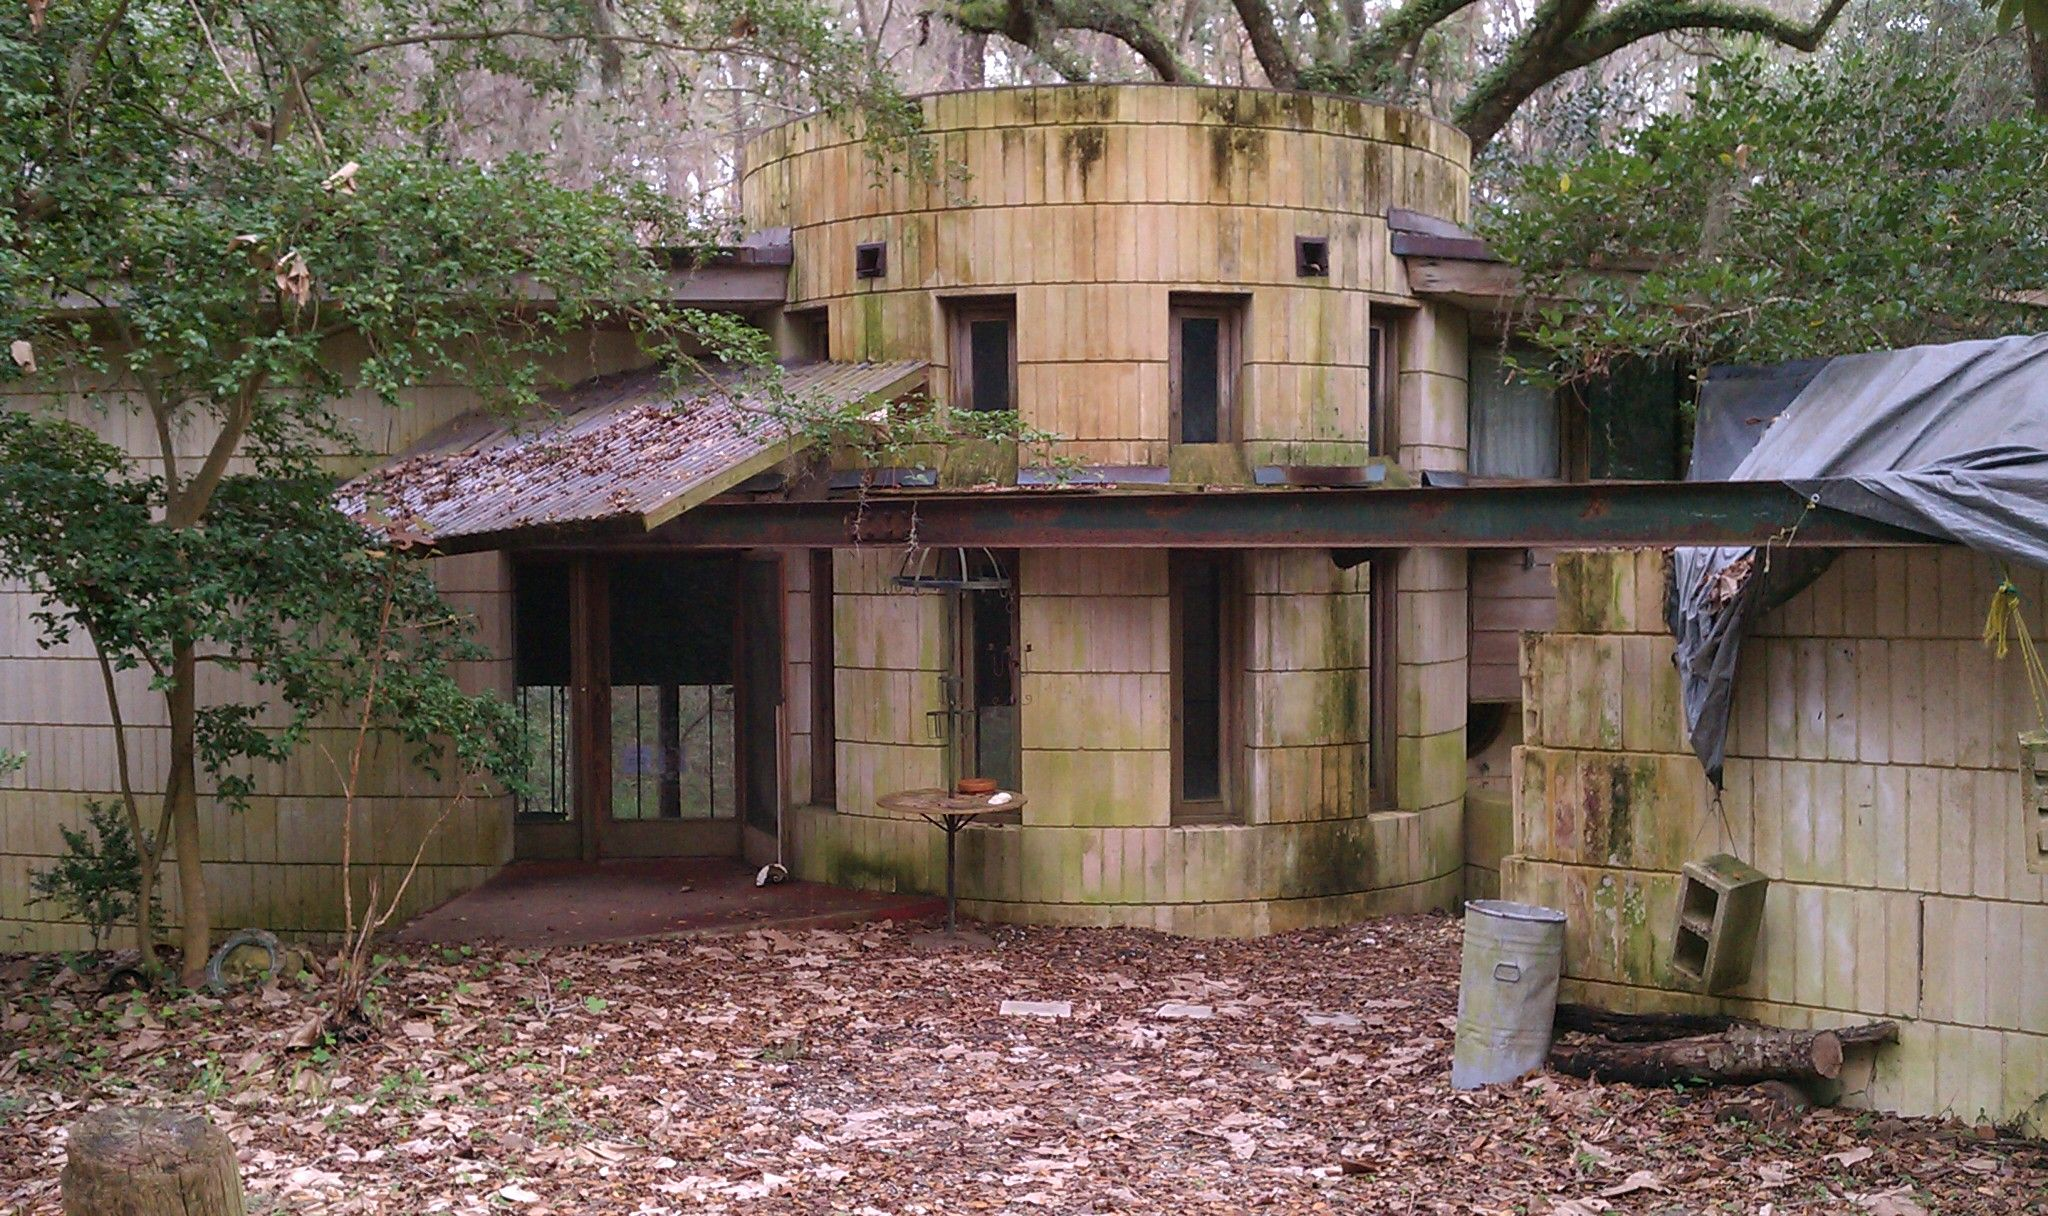 Abandoned frank lloyd wright house george lewis house for Frank lloyd wright list of houses